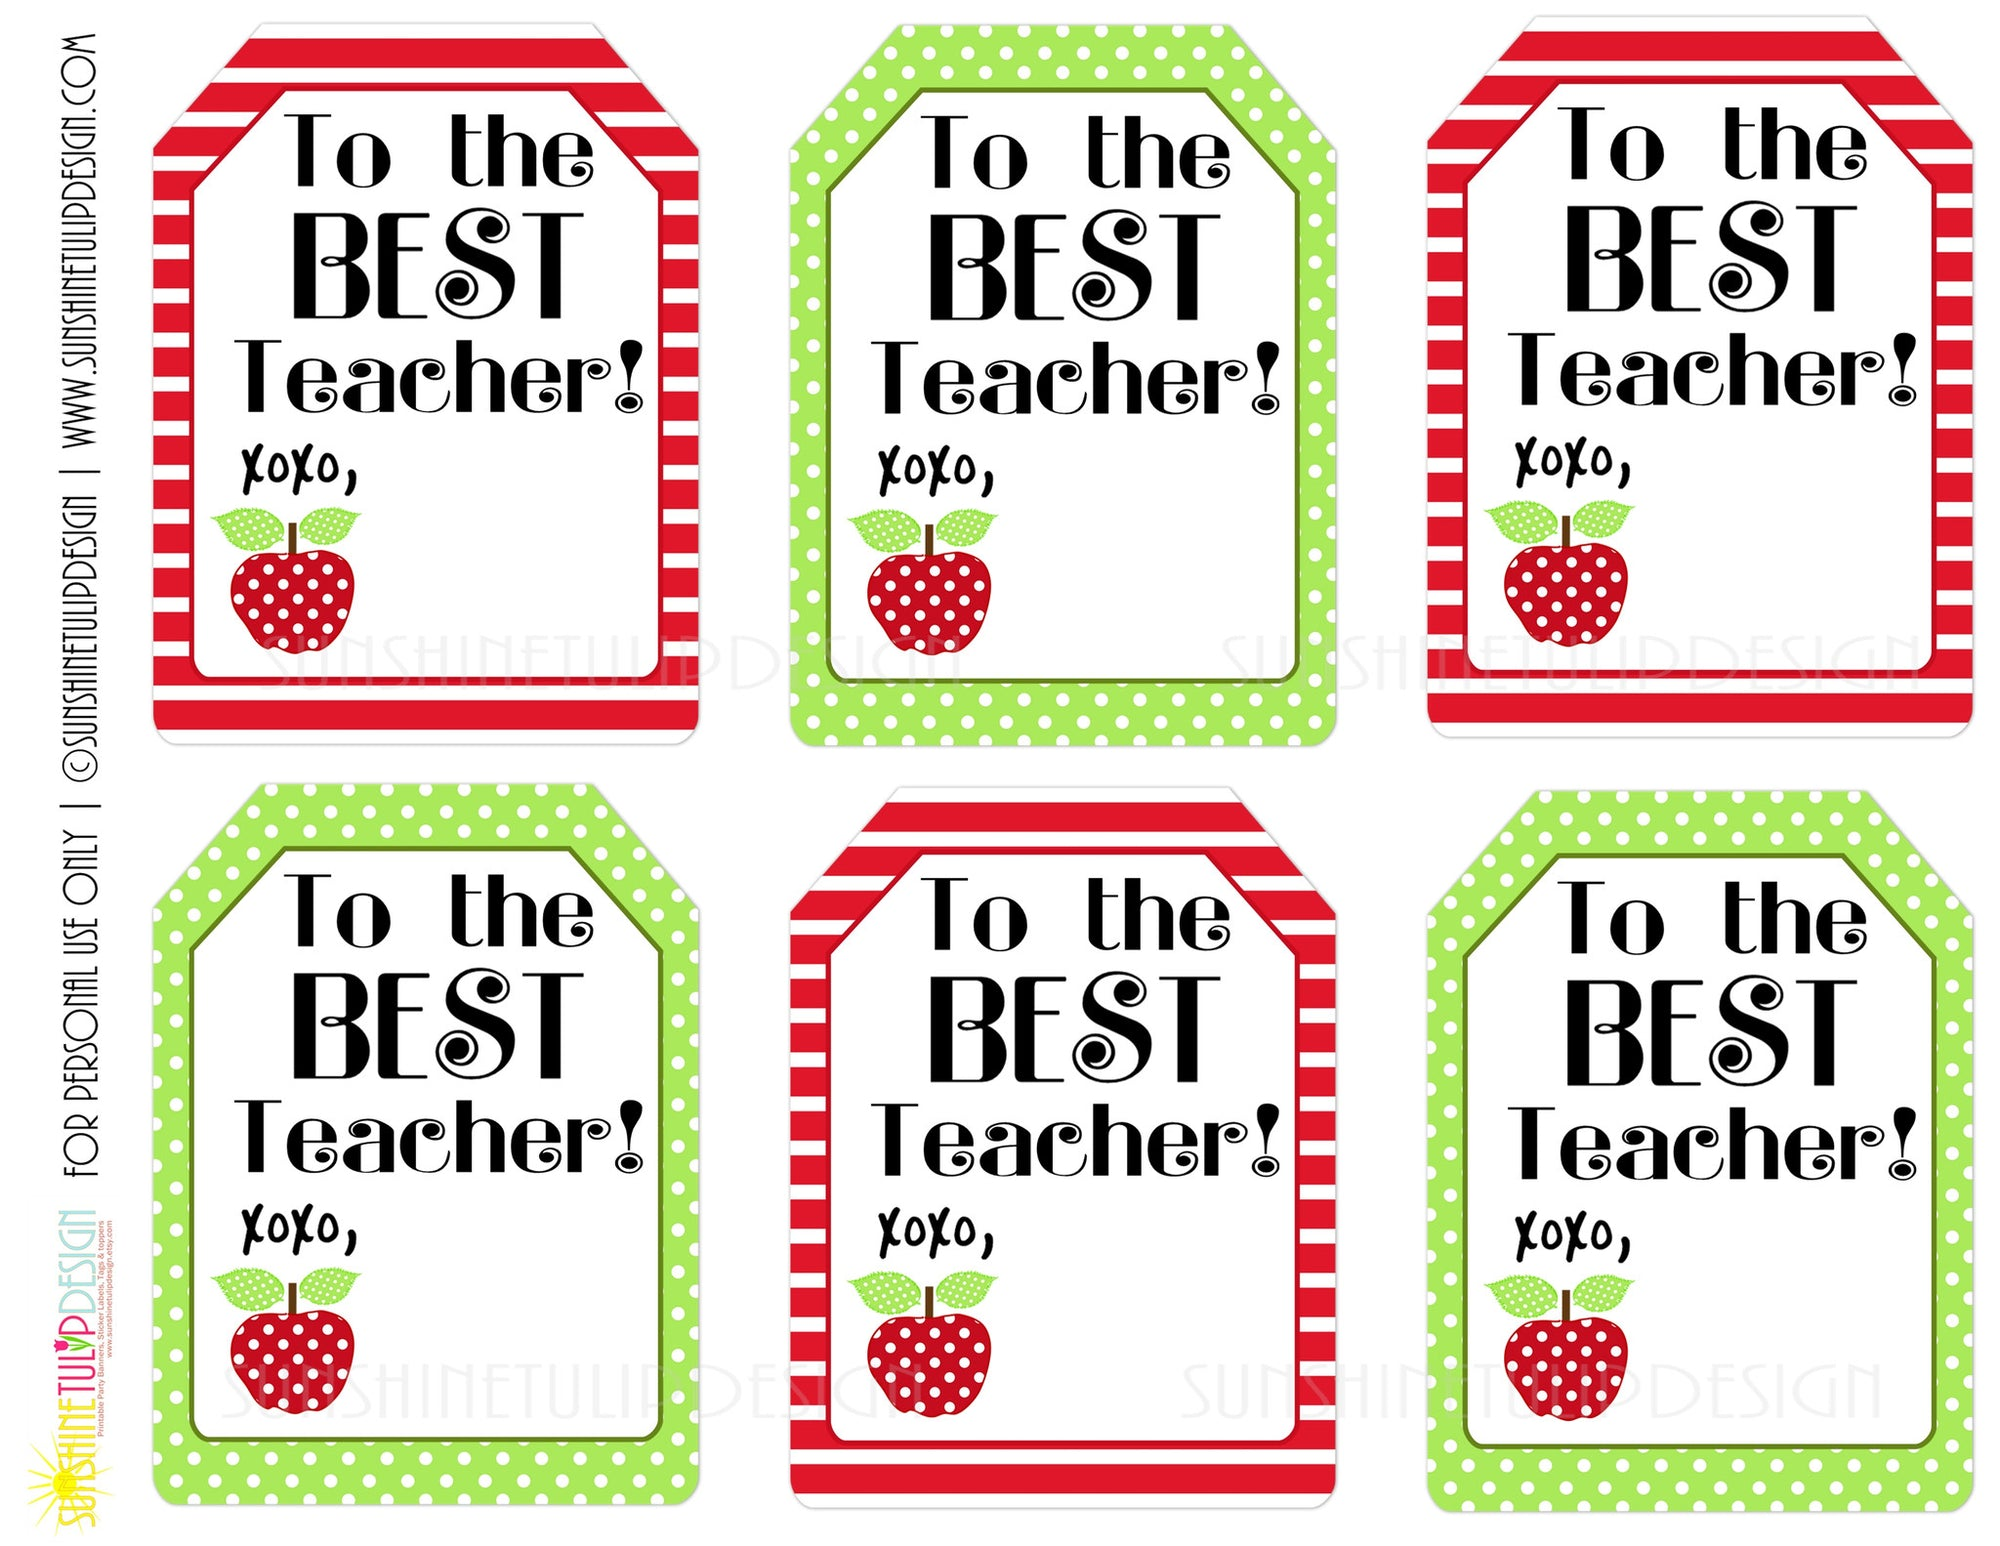 image about Printable Teacher Gift Tags identify Printable Instructor Appreciation Present Tags, The Perfect Instructor Present Tags via Sunshinetulipdesign